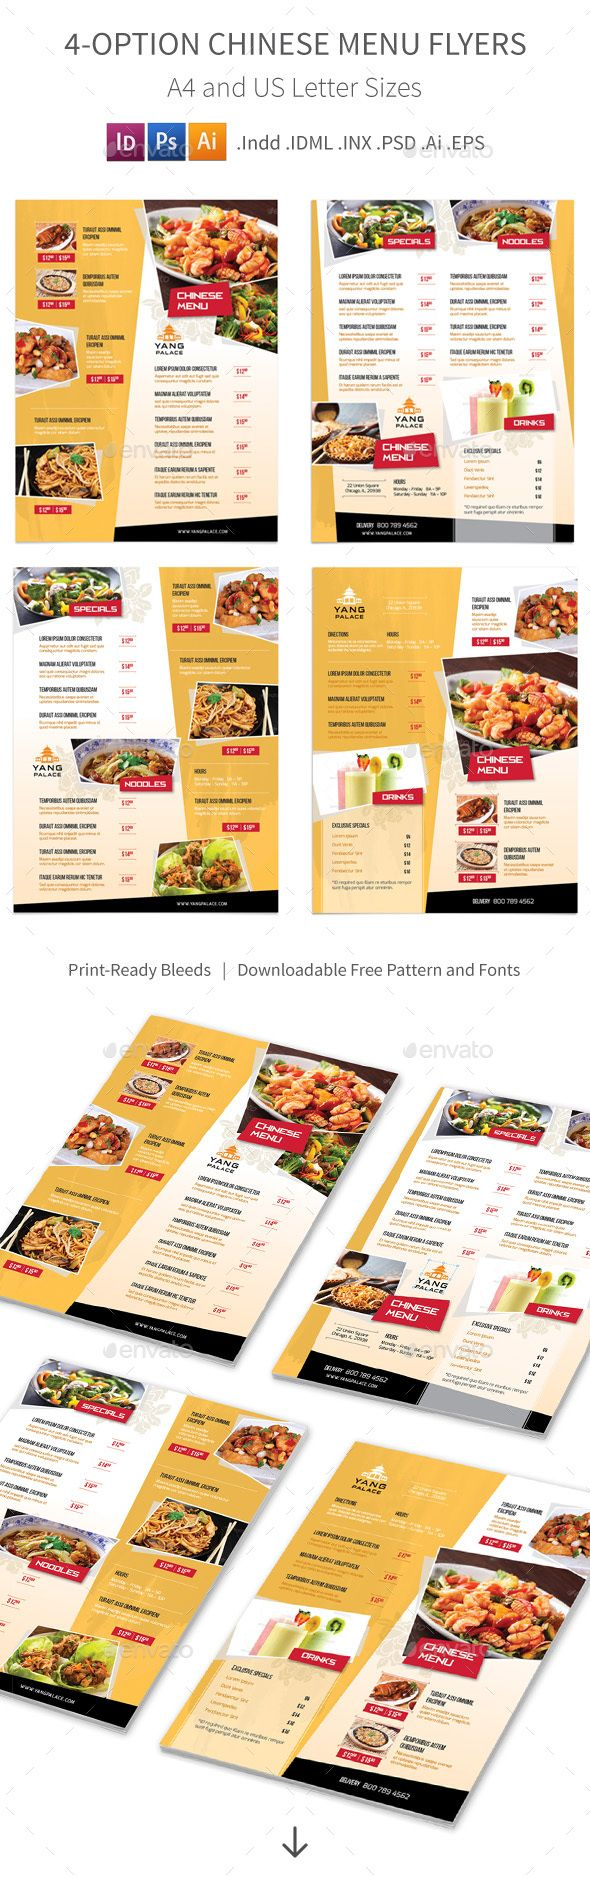 best 25 chinese restaurant ideas on pinterest great wall